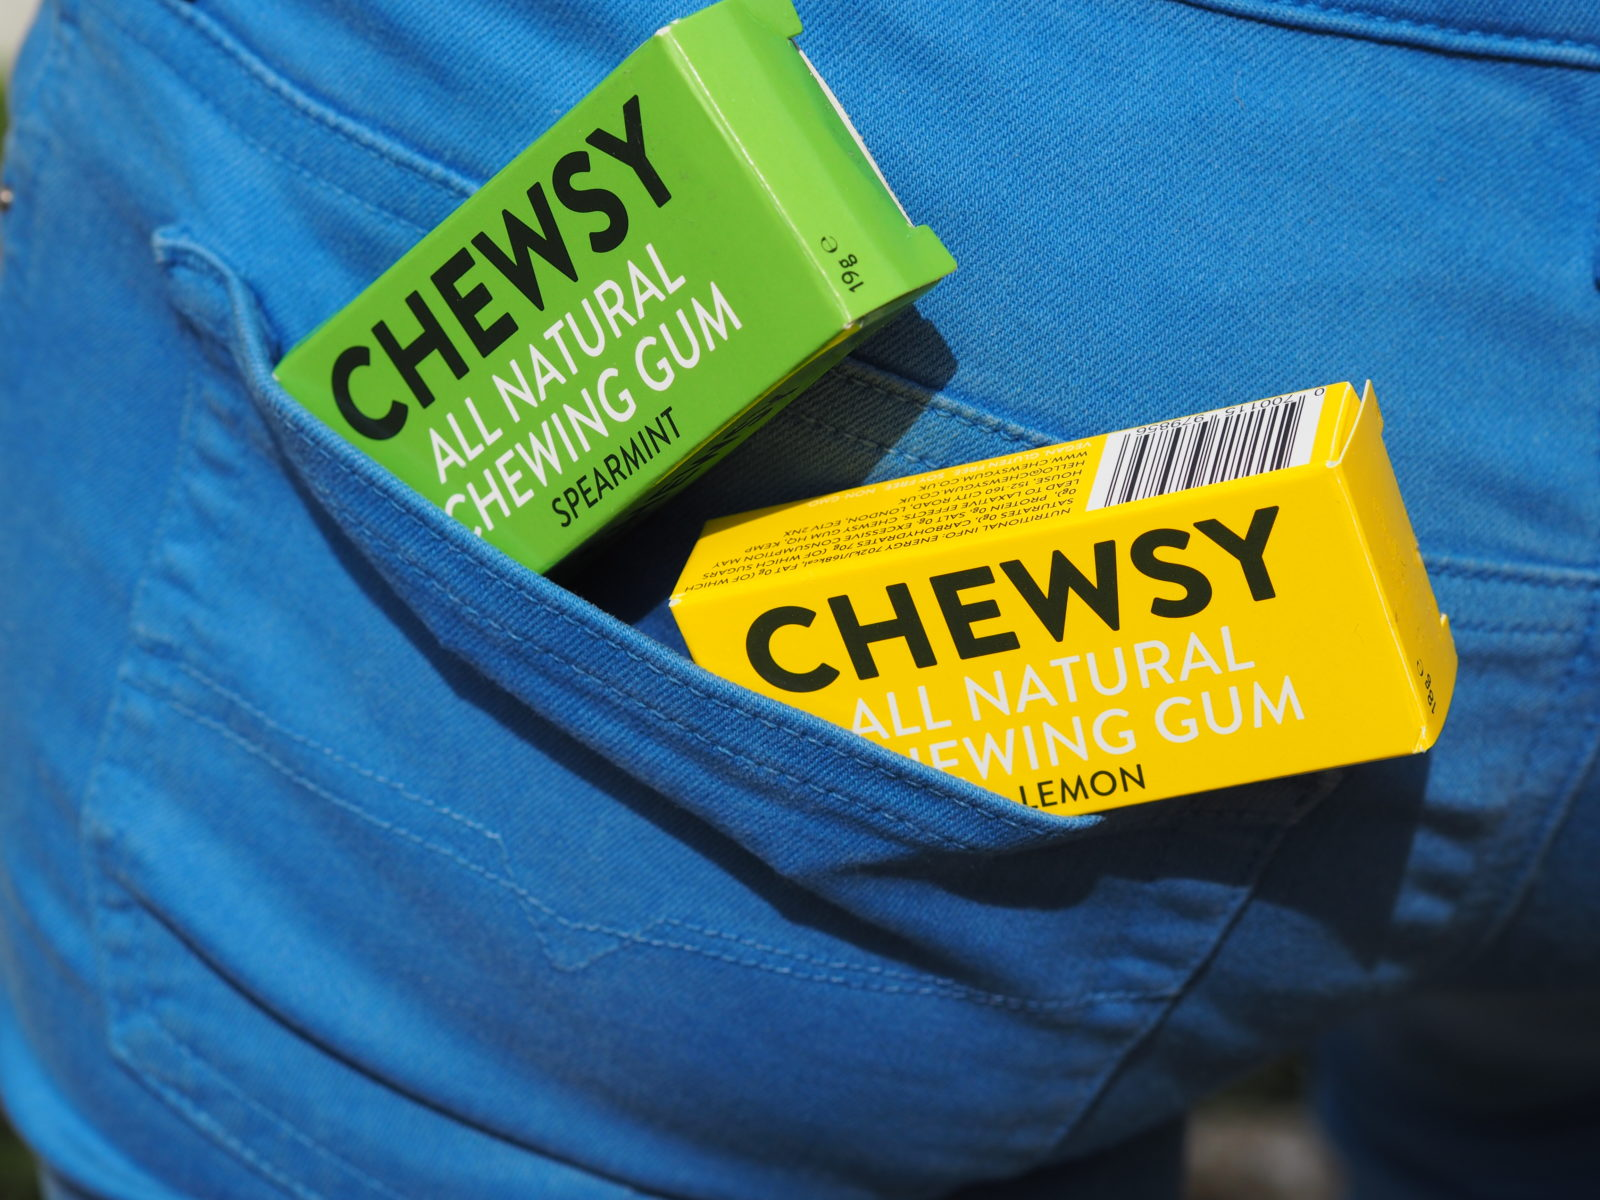 Chewsy Gum The 100% Natural Chewing Gum!